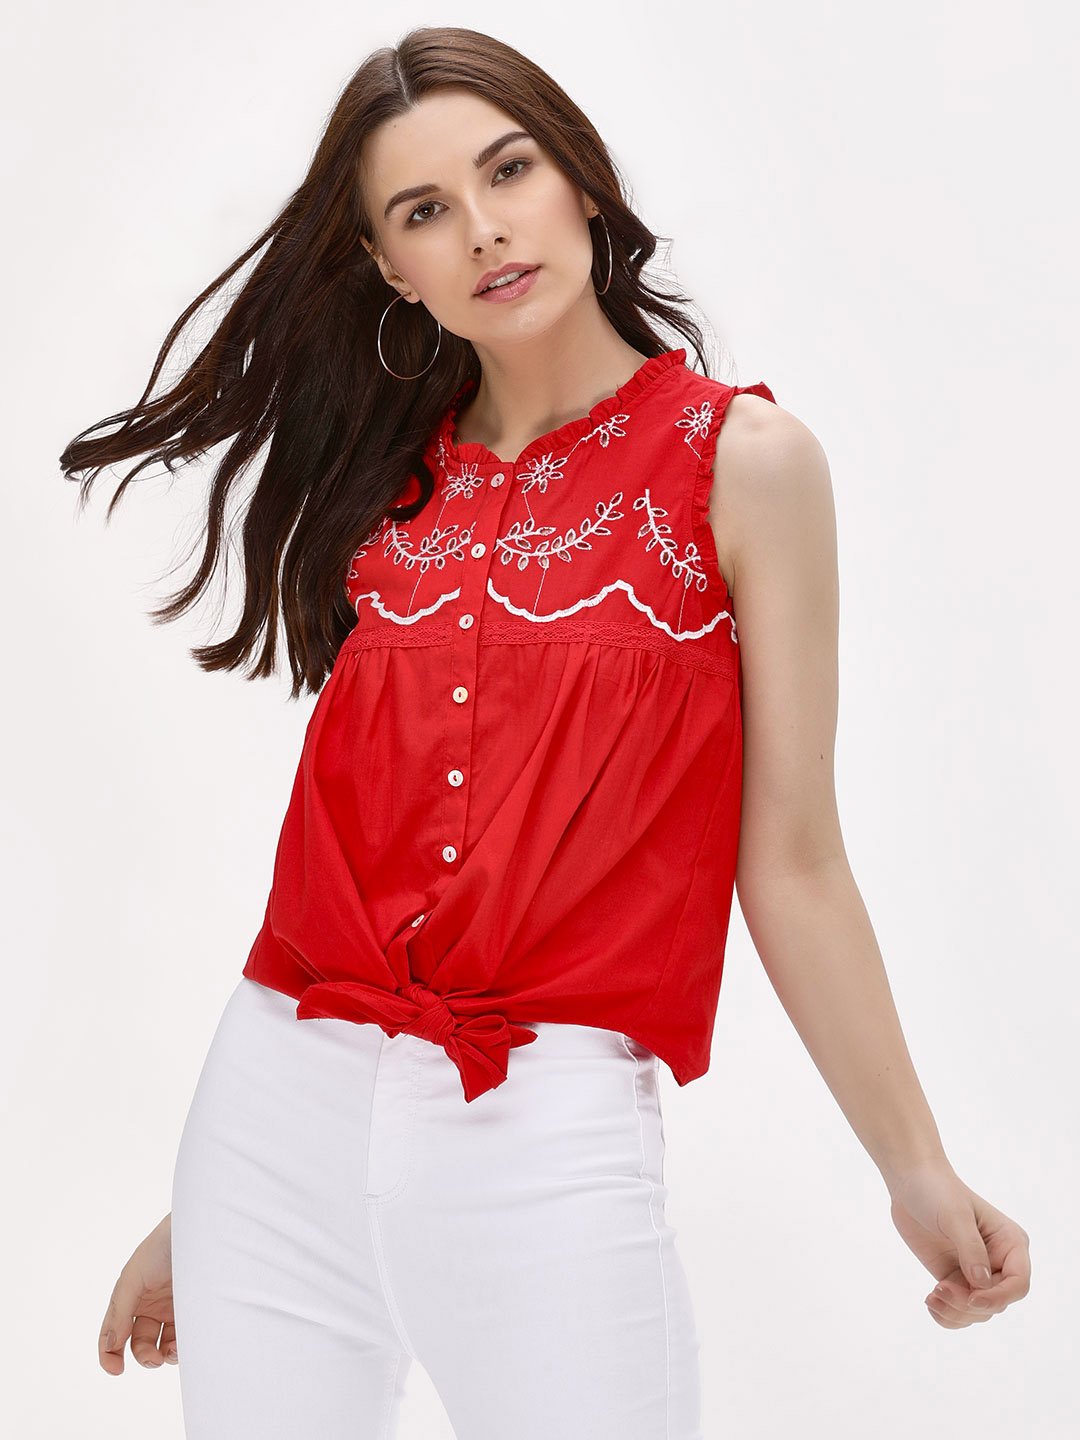 Kisscoast Red Ruffled Neck Embroidered Top 1